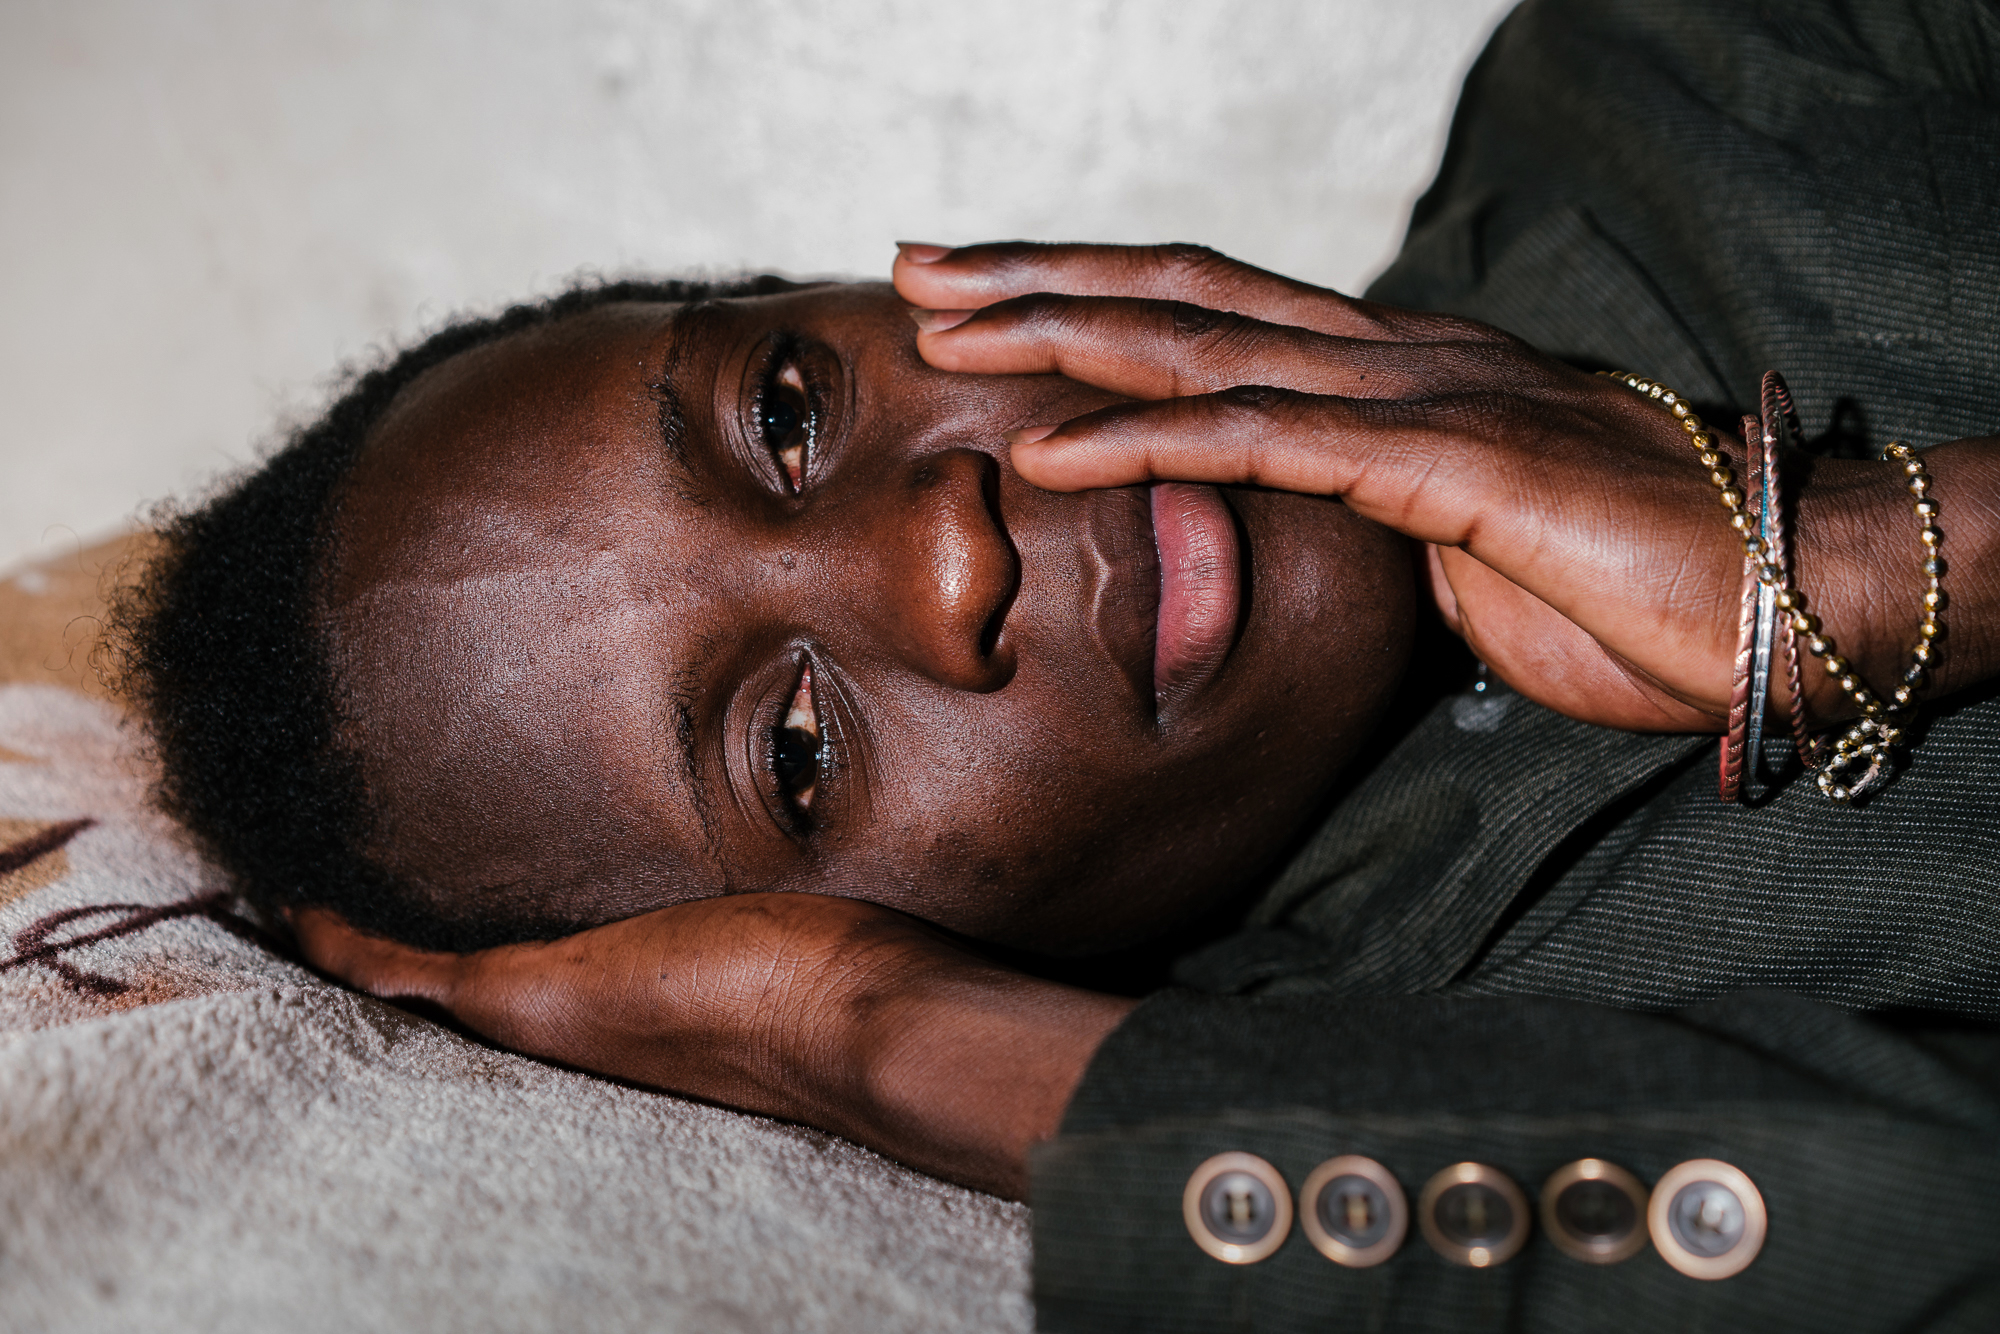 Shamim, 19, a transwoman, poses for a portrait at Ice Breakers Uganda, an LGBT health-services organization, where she has been staying for the past four months. Previously, she was arrested, beaten and harassed by police, angry mobs and her family on three separate occasions.